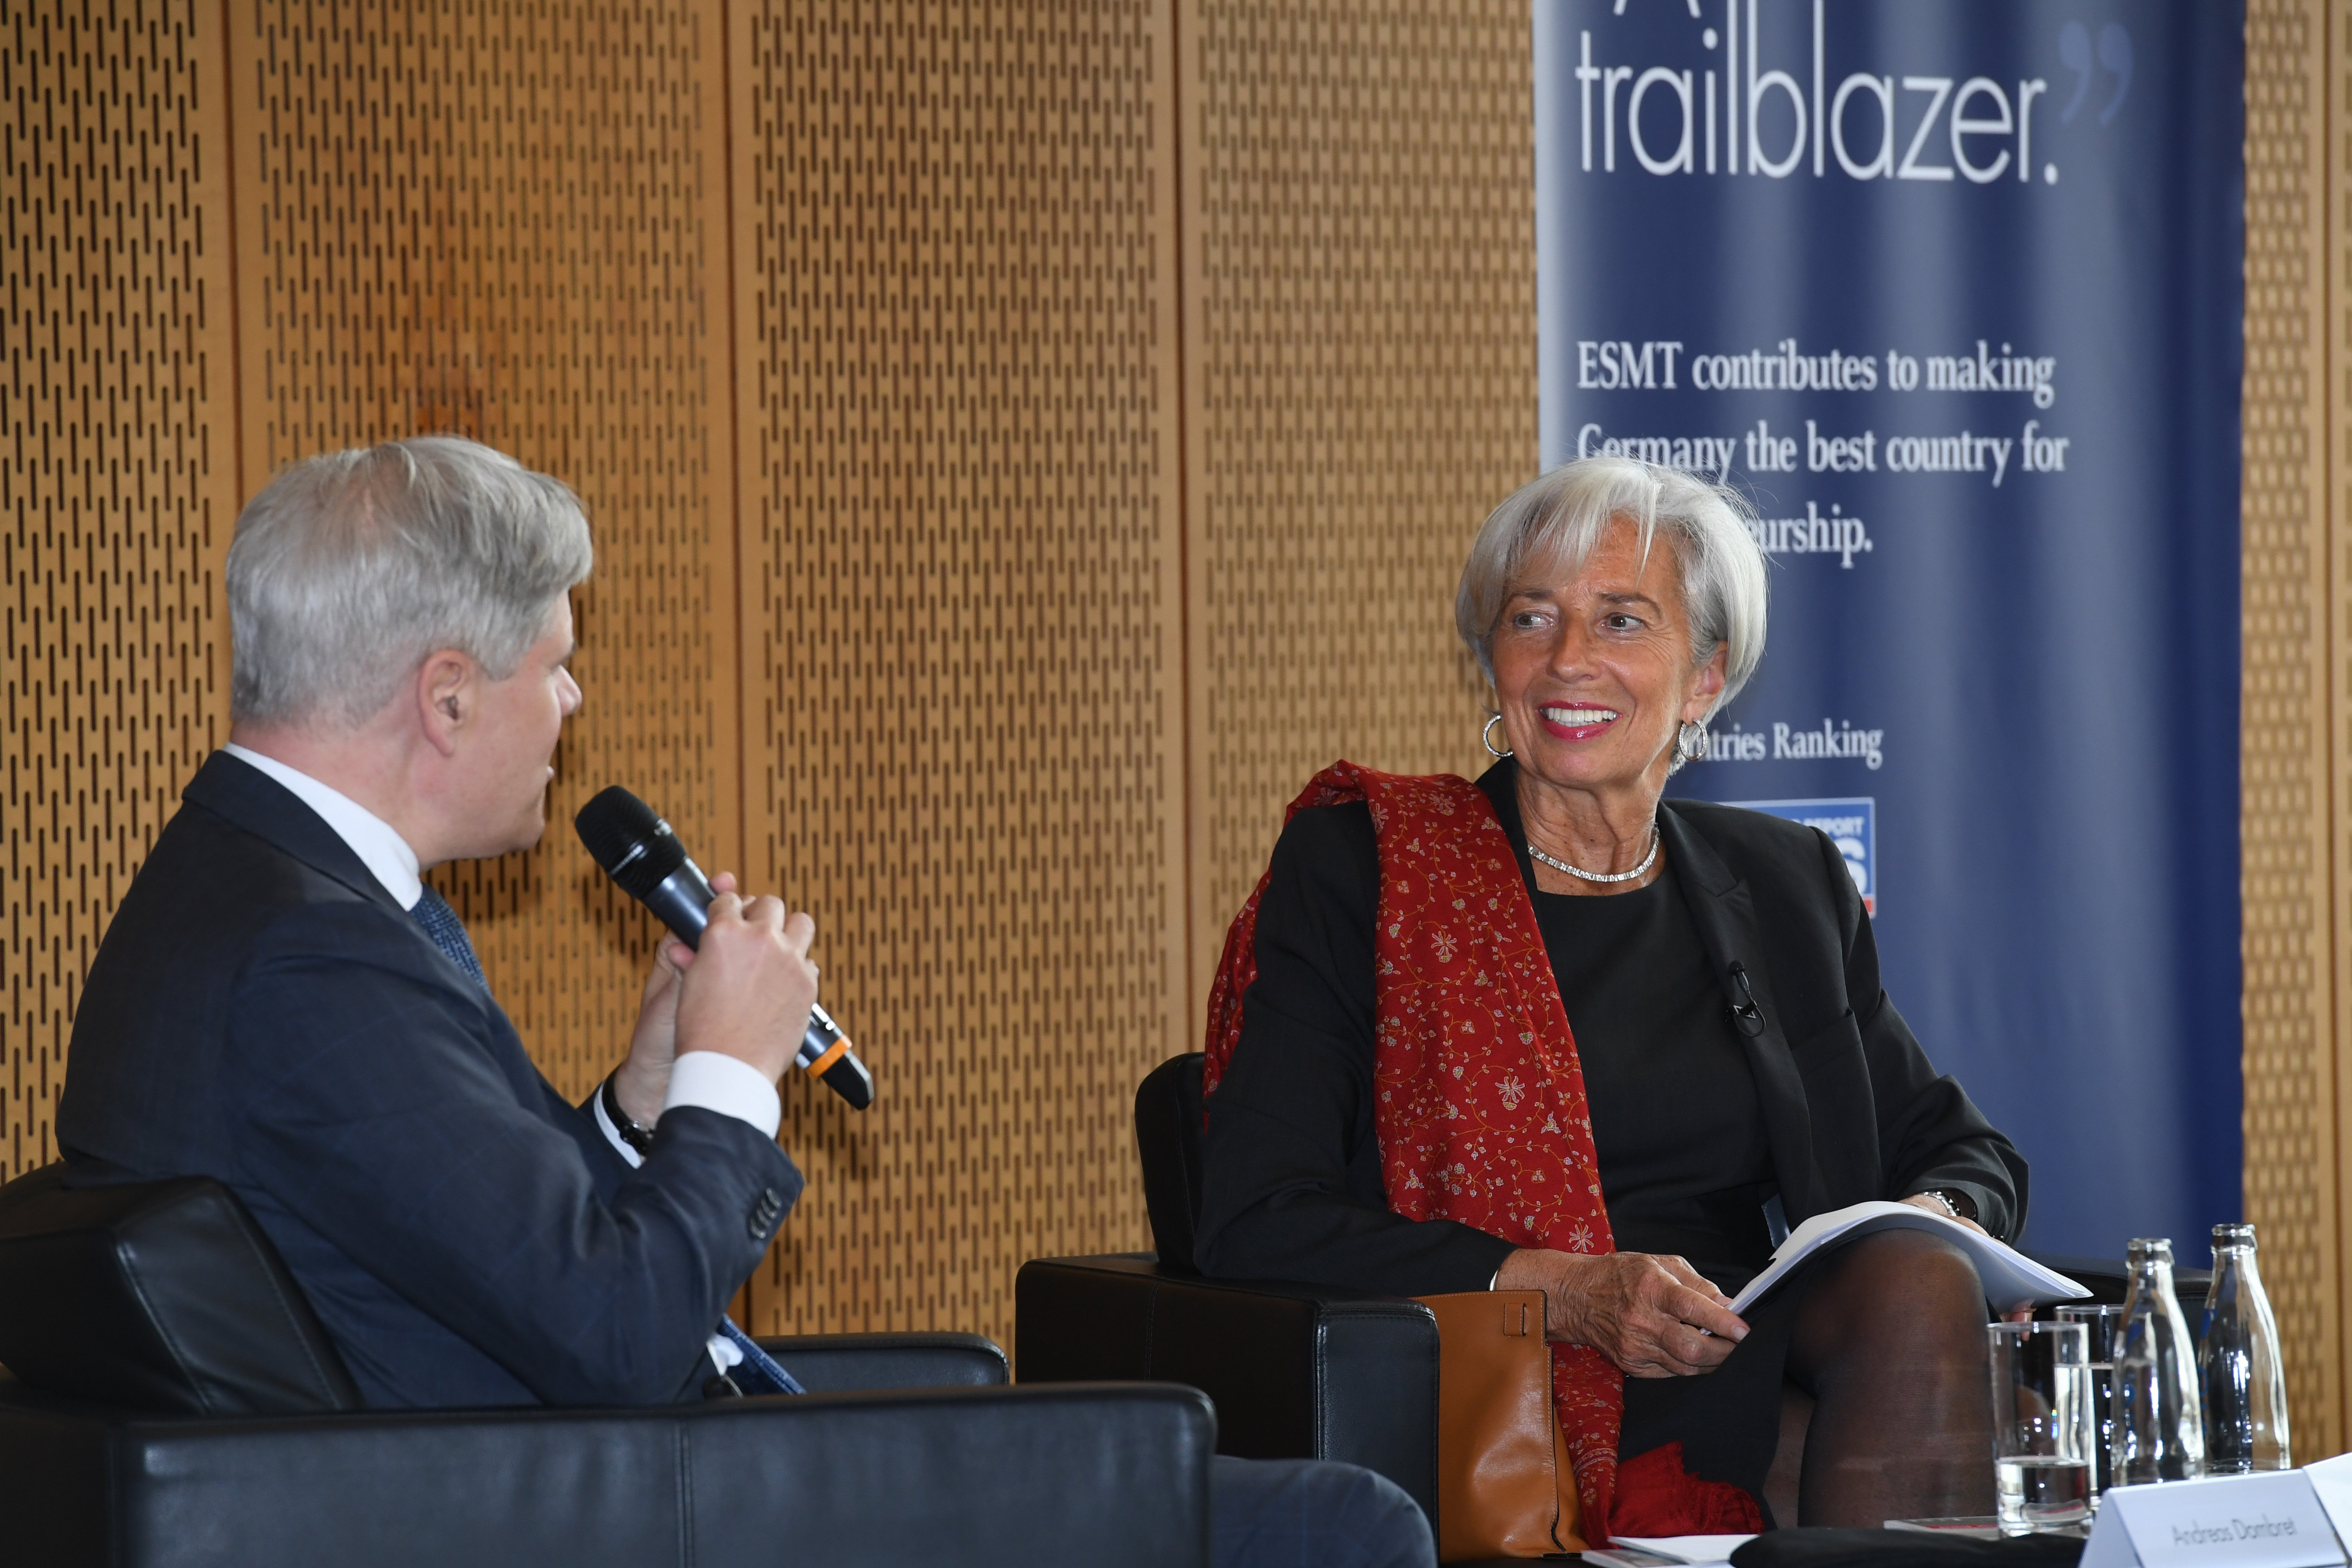 Christine Lagarde in talk